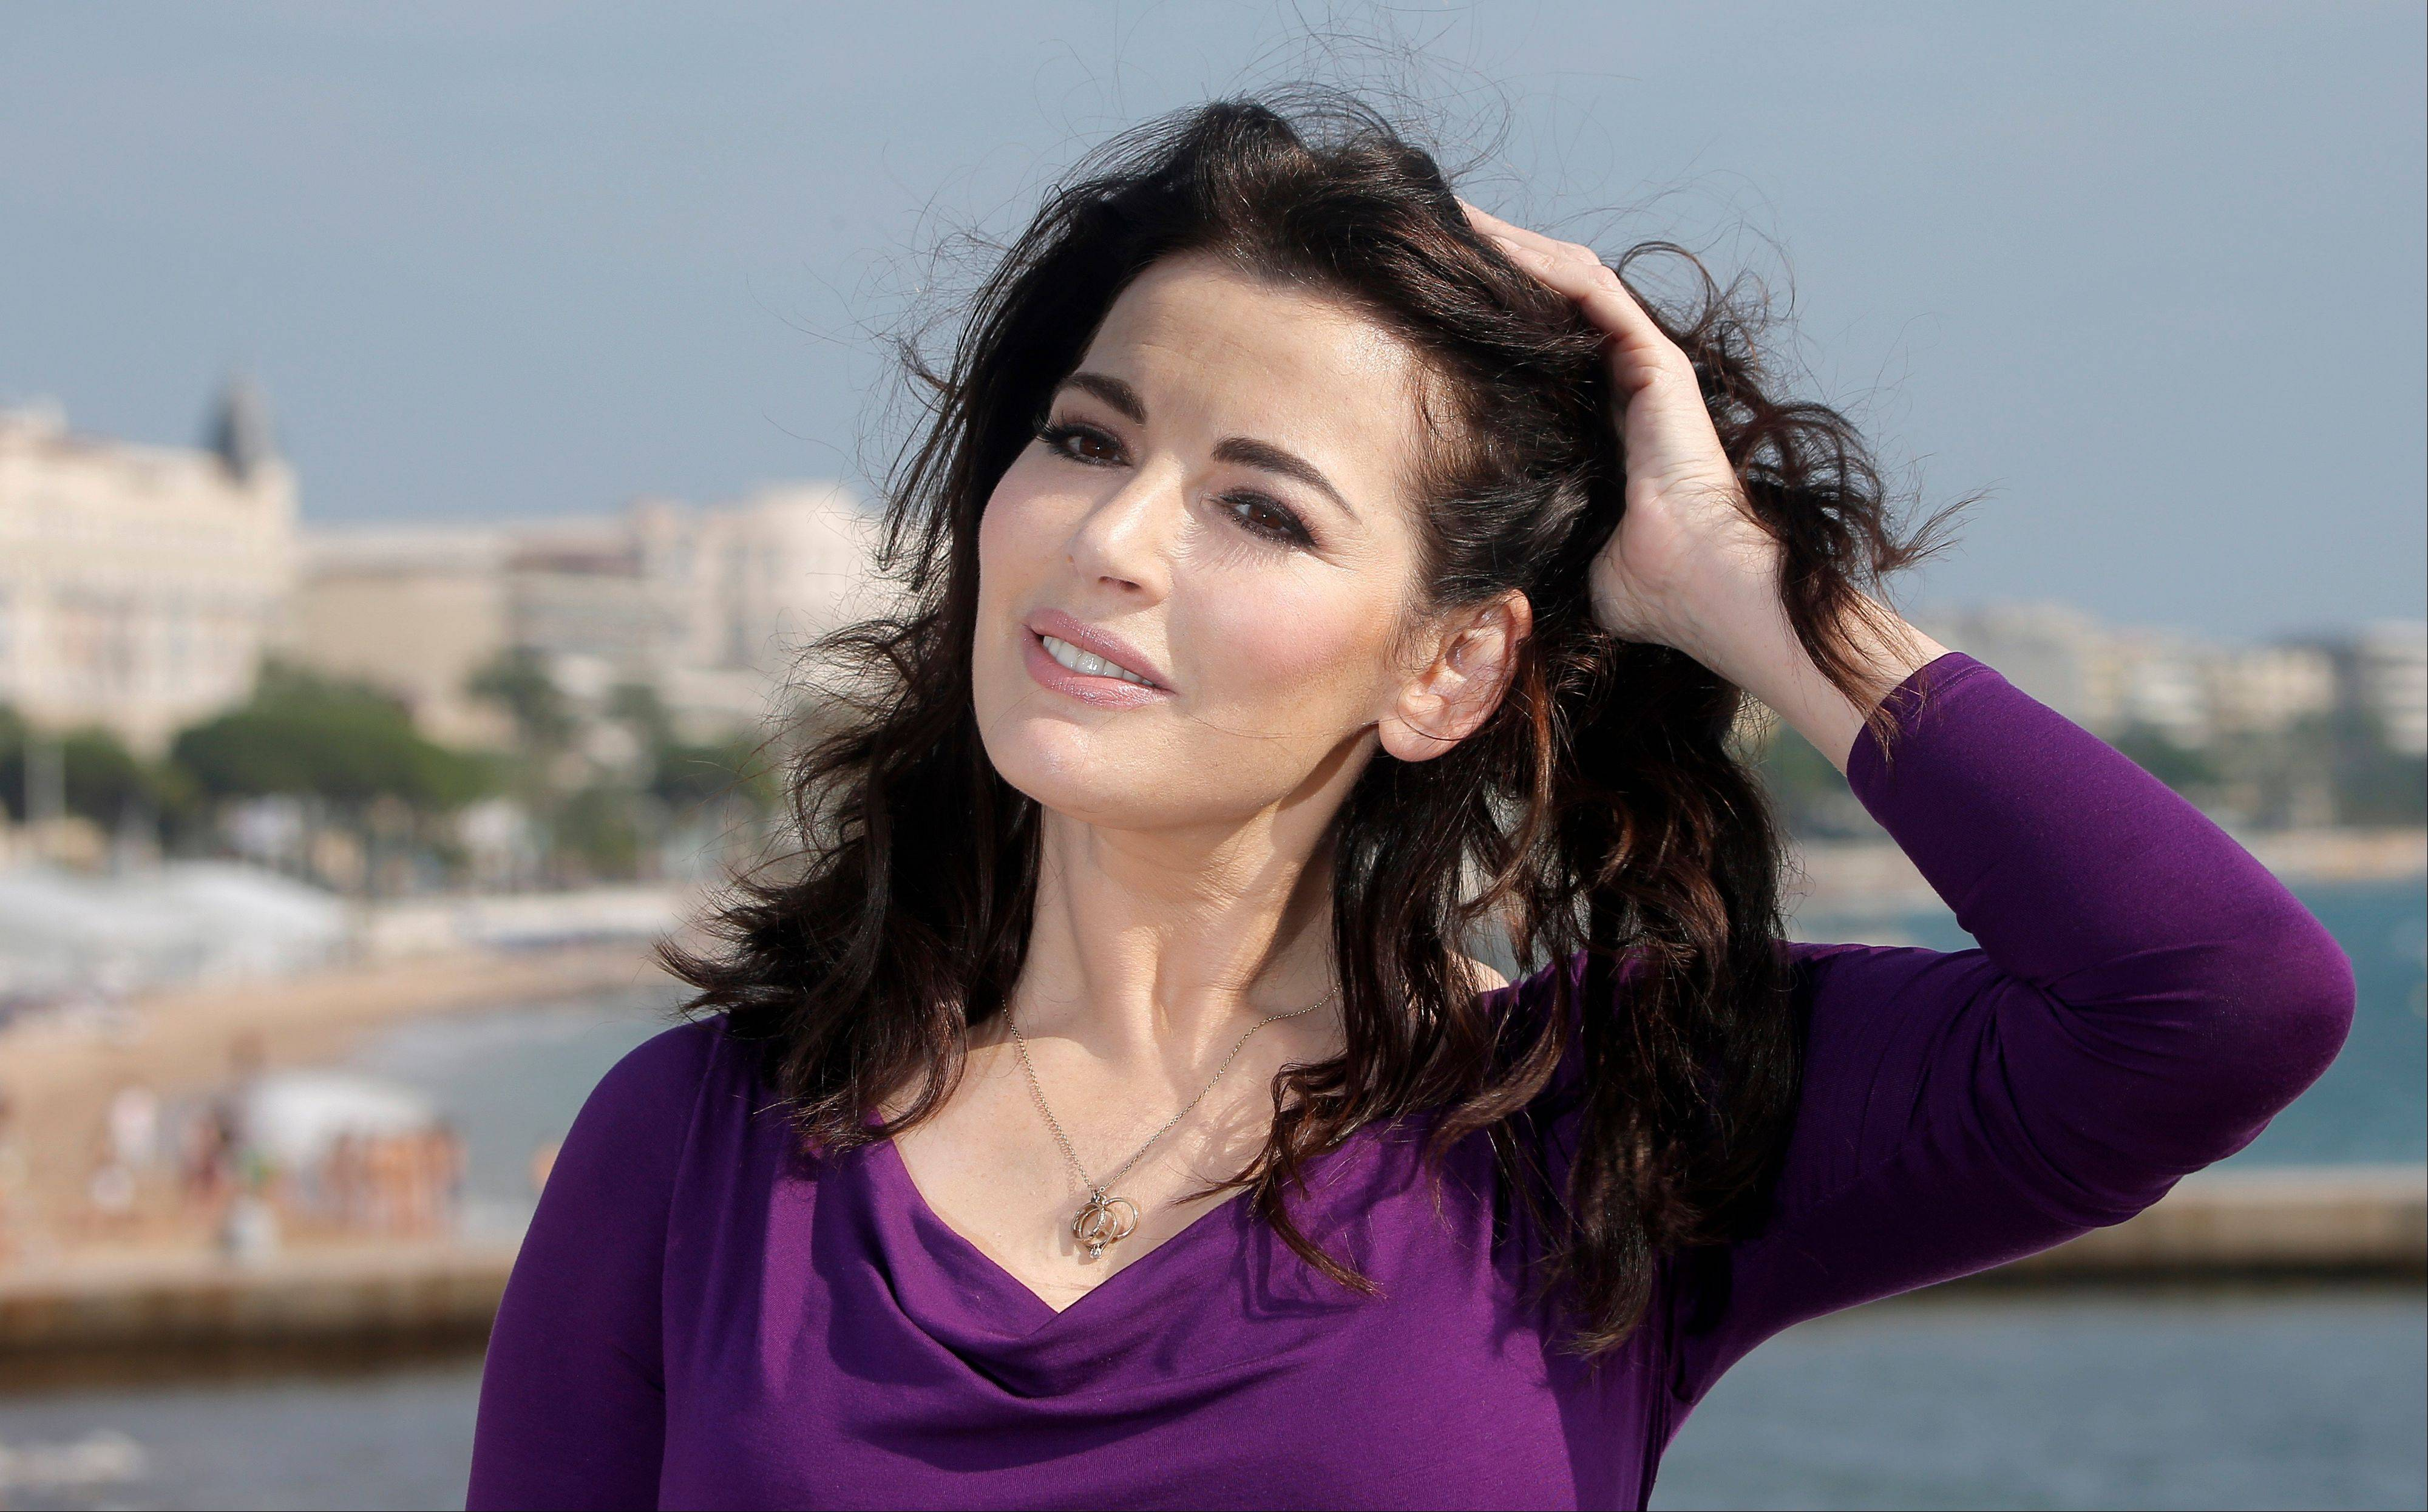 English food writer, journalist and broadcaster, Nigella Lawson. British police say they are investigating after a newspaper published photos of Nigella Lawson�s husband Charles Saatchi with his hands around the celebrity chef�s throat. The Sunday People newspaper ran pictures of what it said was the couple�s violent argument at a London restaurant on June 9, 2013.